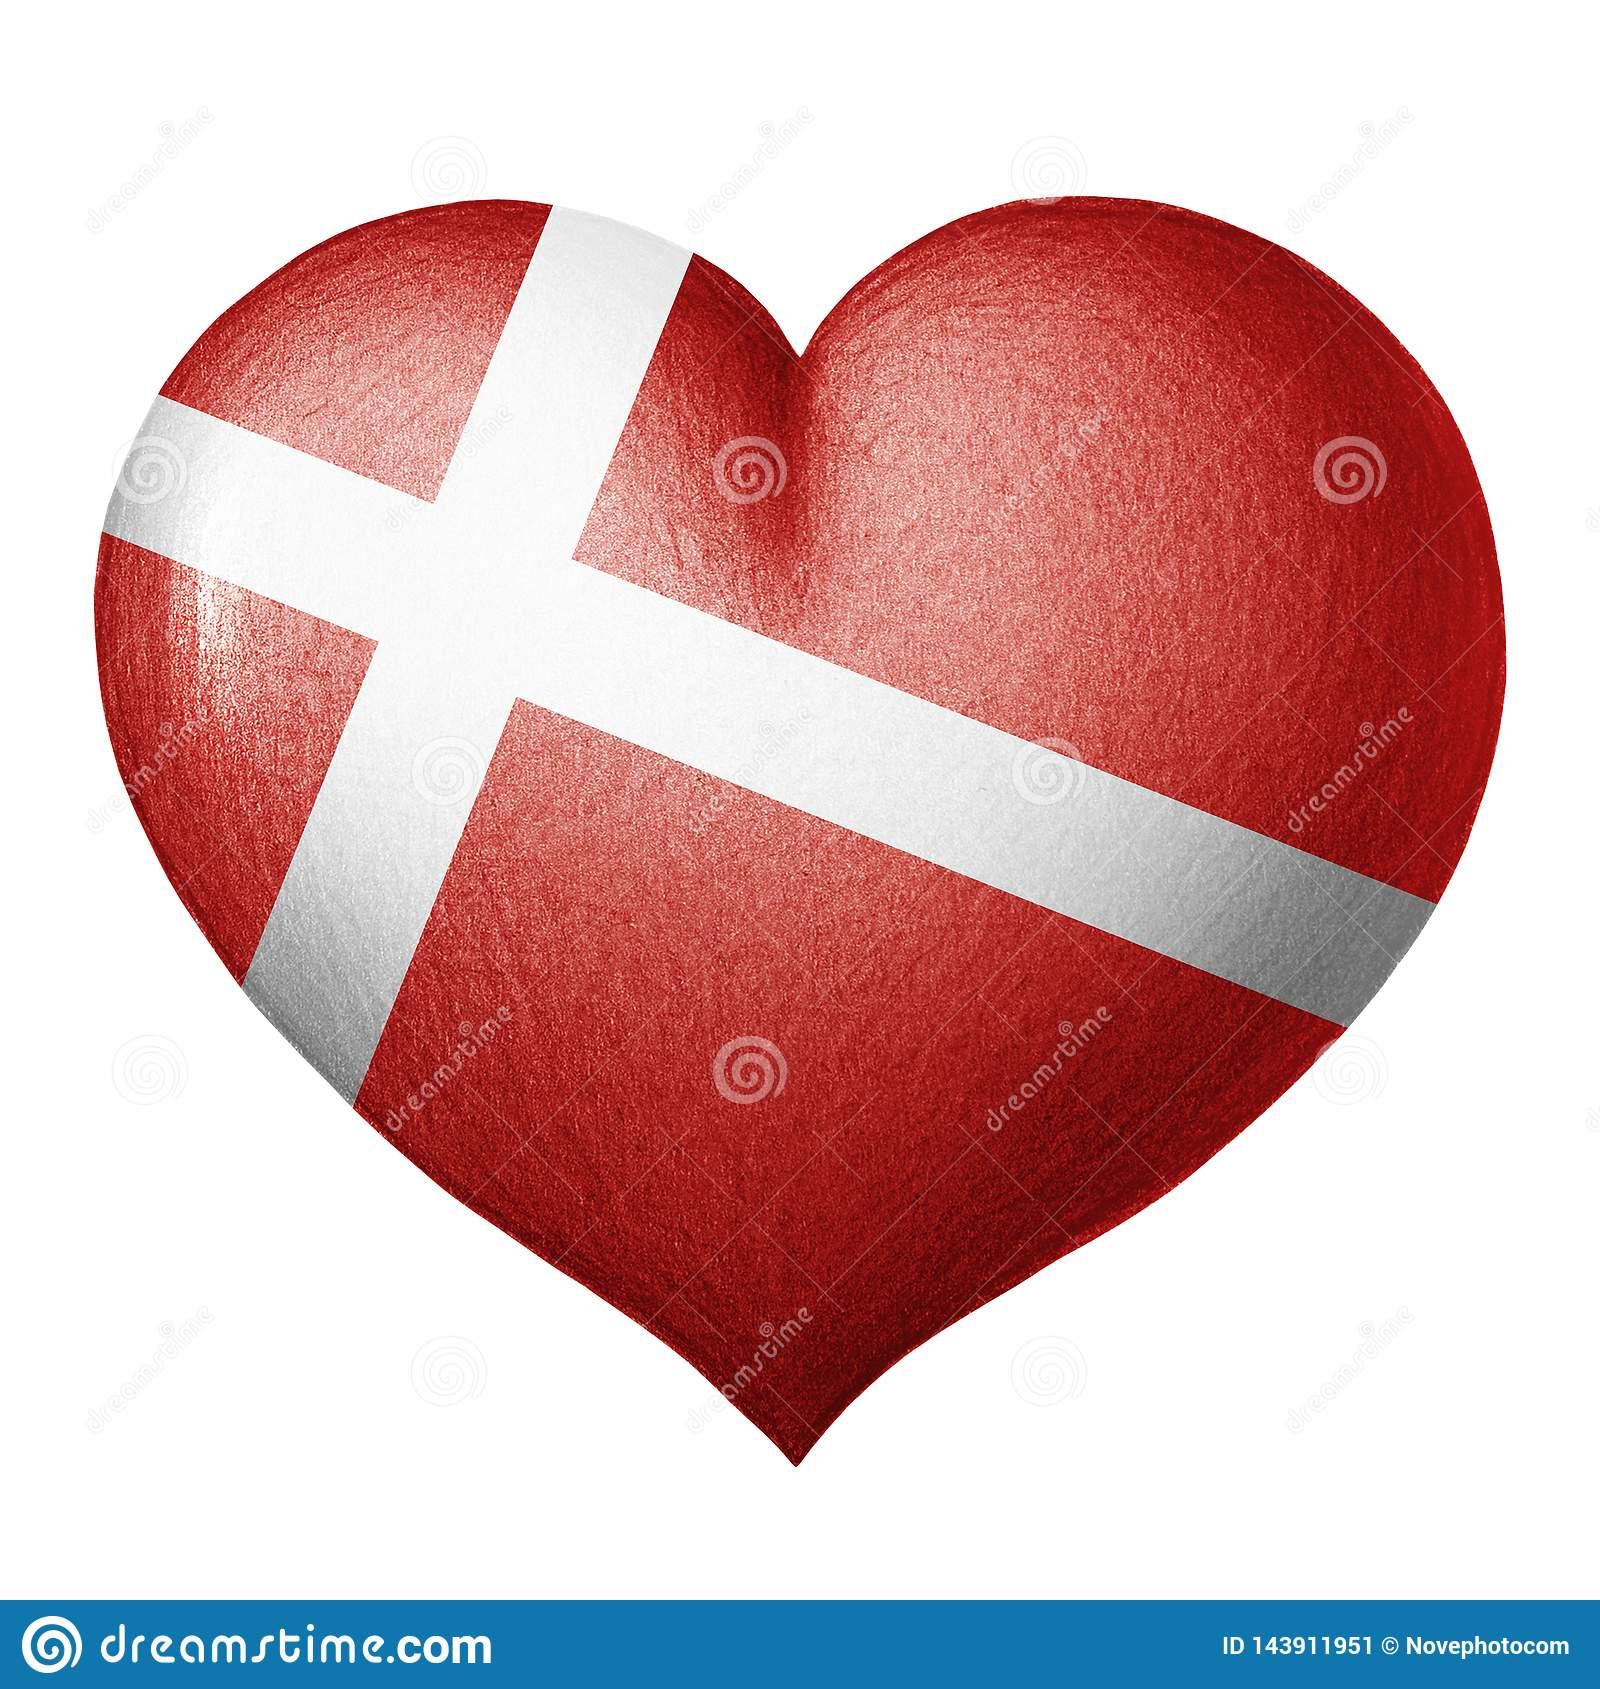 Danish flag heart isolated on white background. Pencil drawing